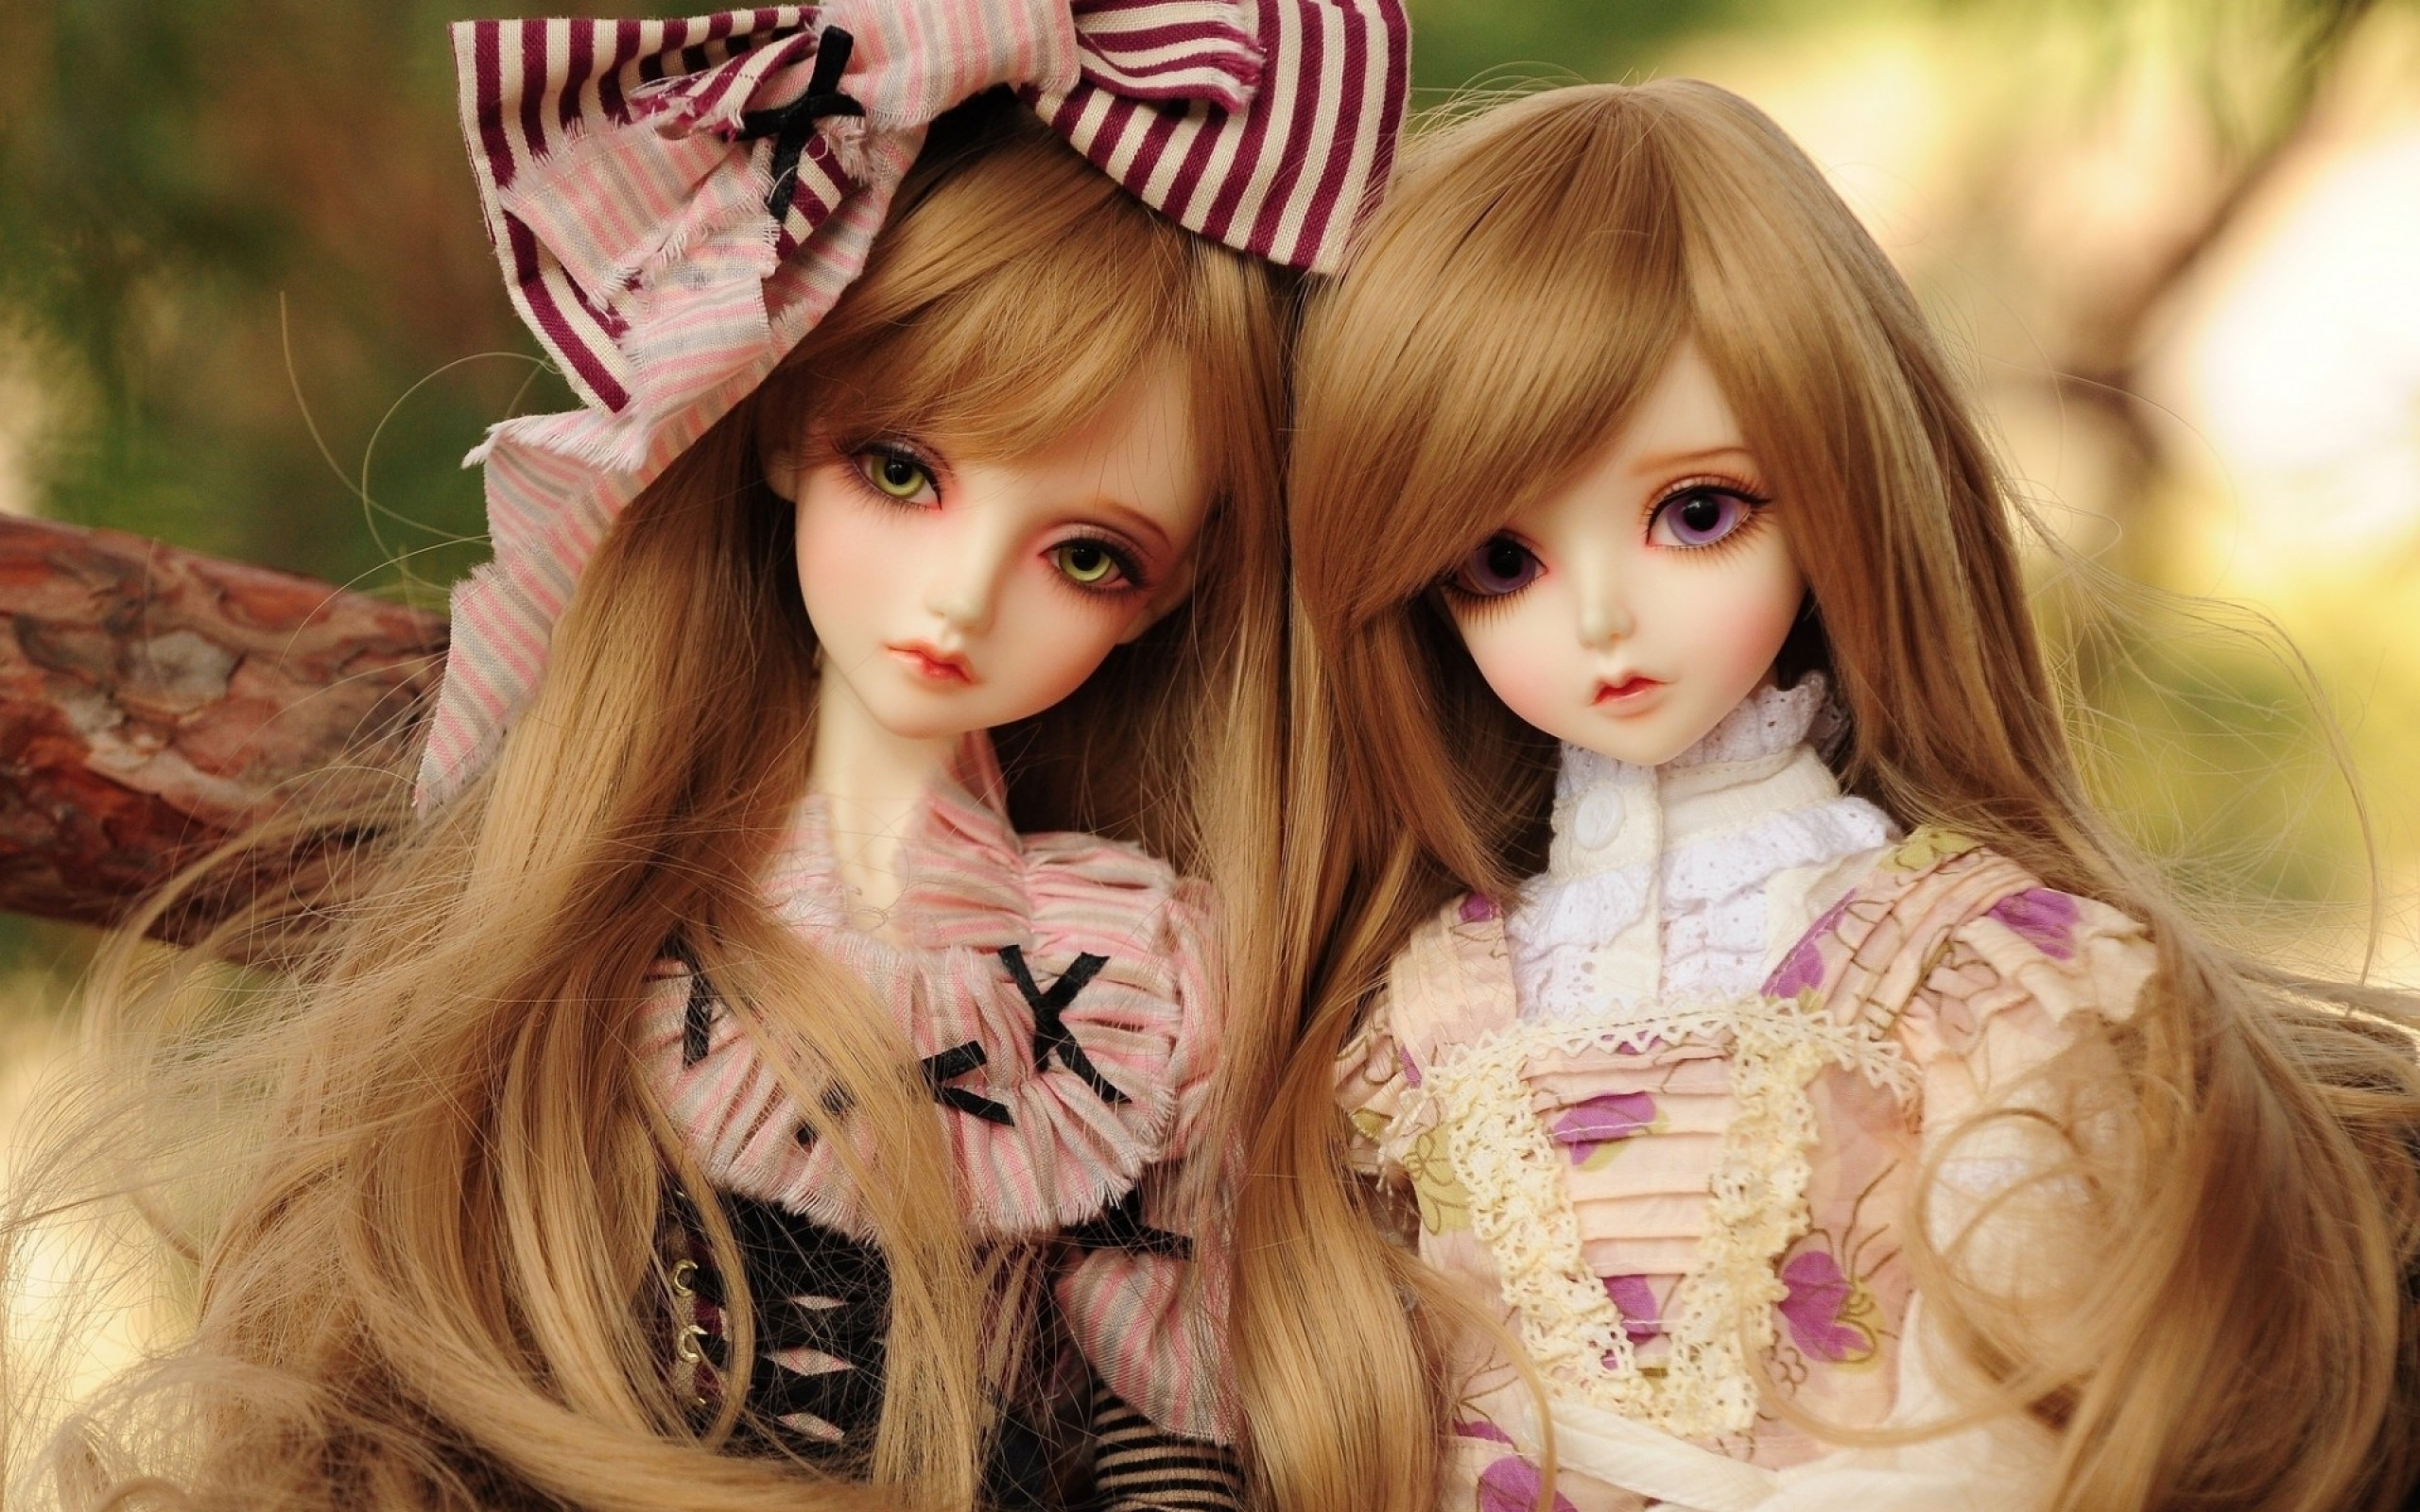 Beautiful Dolls  Wallpaper, High Definition, High Quality, Widescreen